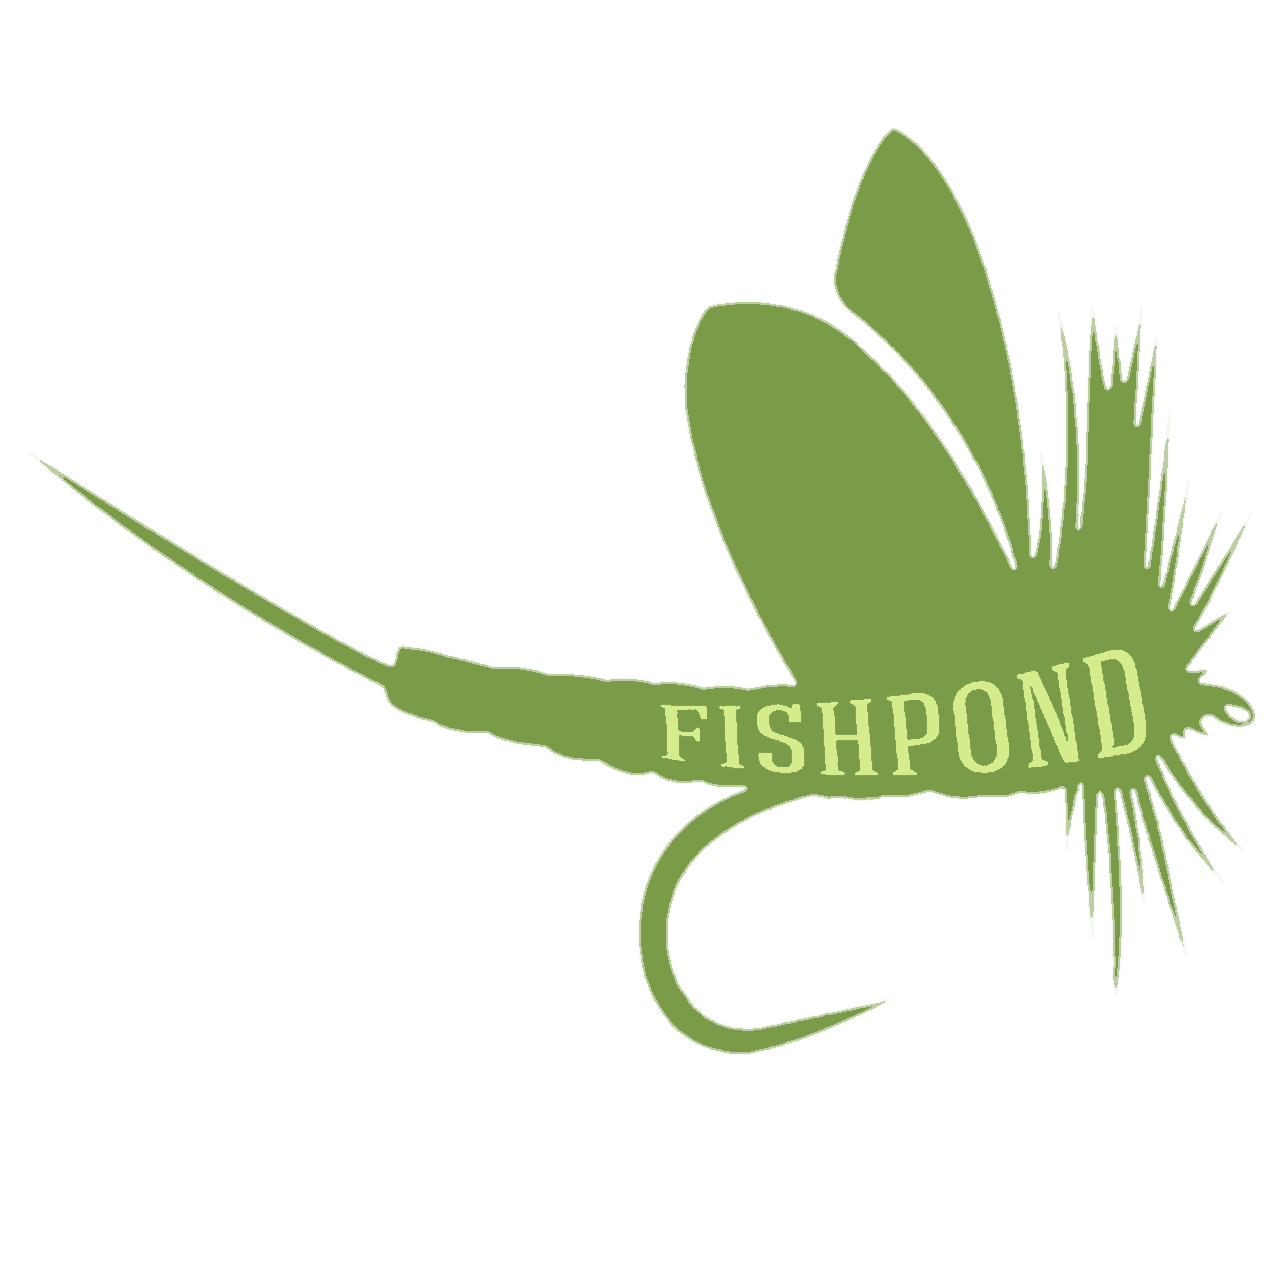 Fishpond green drake sticker fly fishing stickers and decals for Fishpond fly fishing